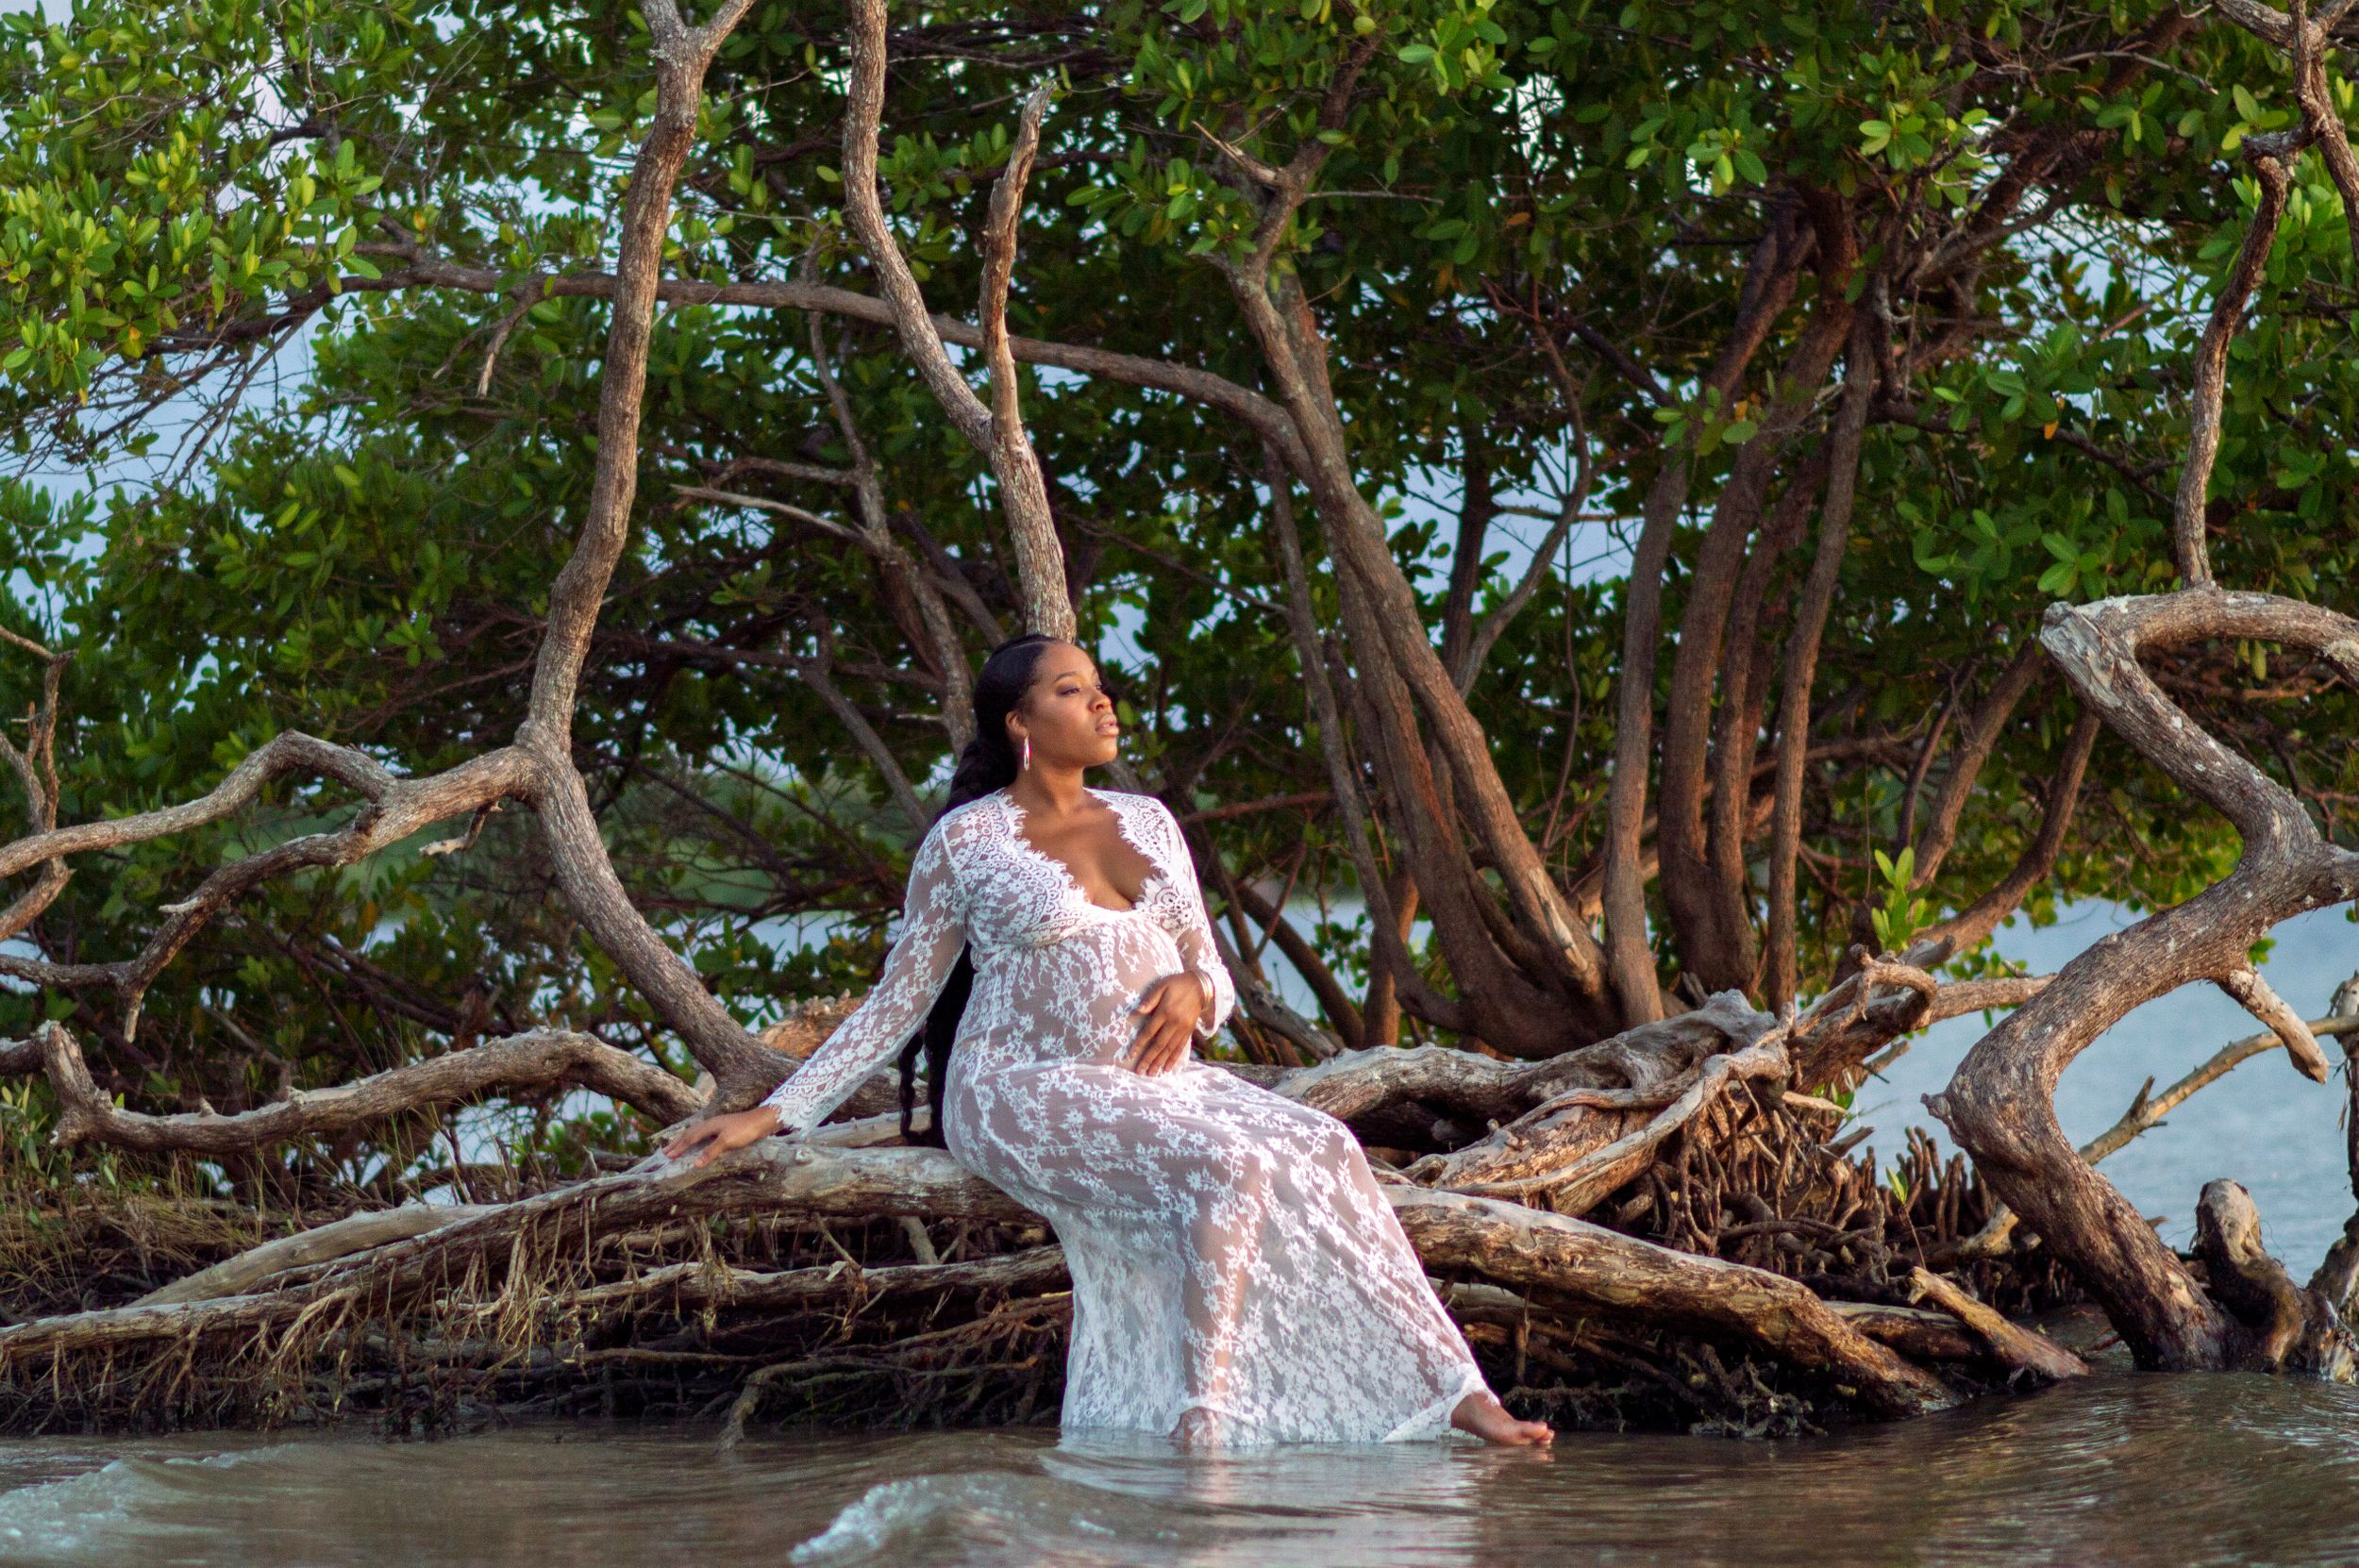 Pregnant mother sitting on a tree in the water